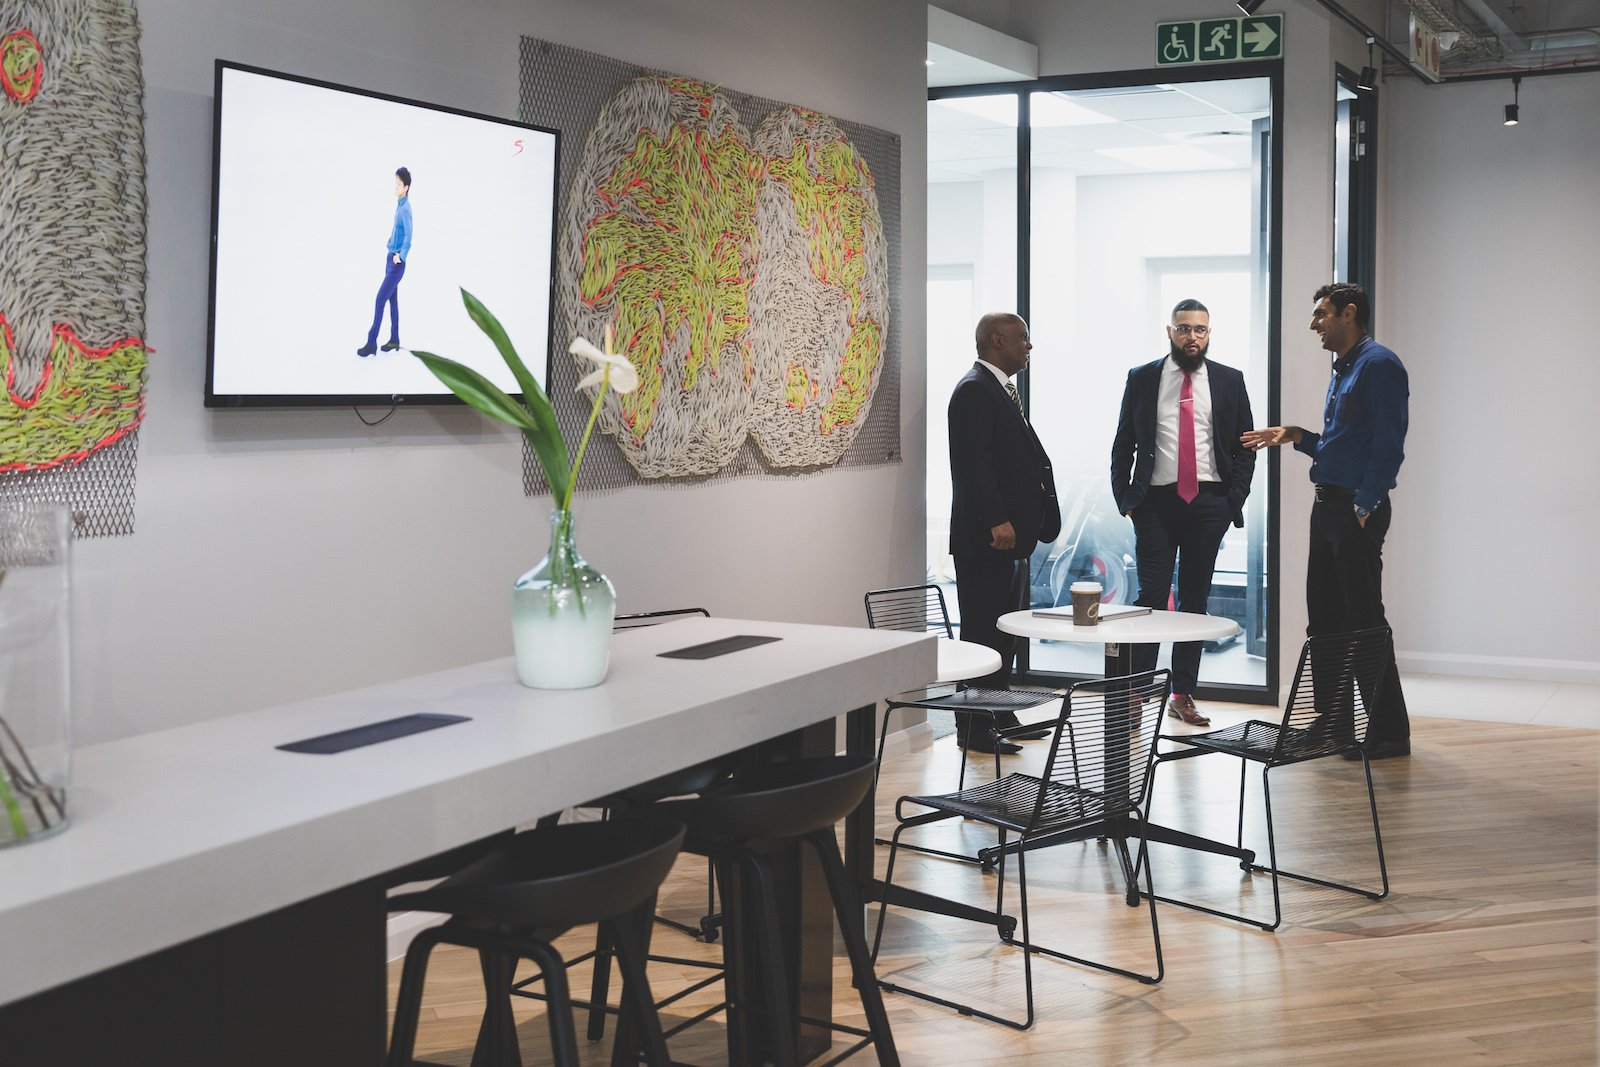 coworking space co working office space - the business exchange 2